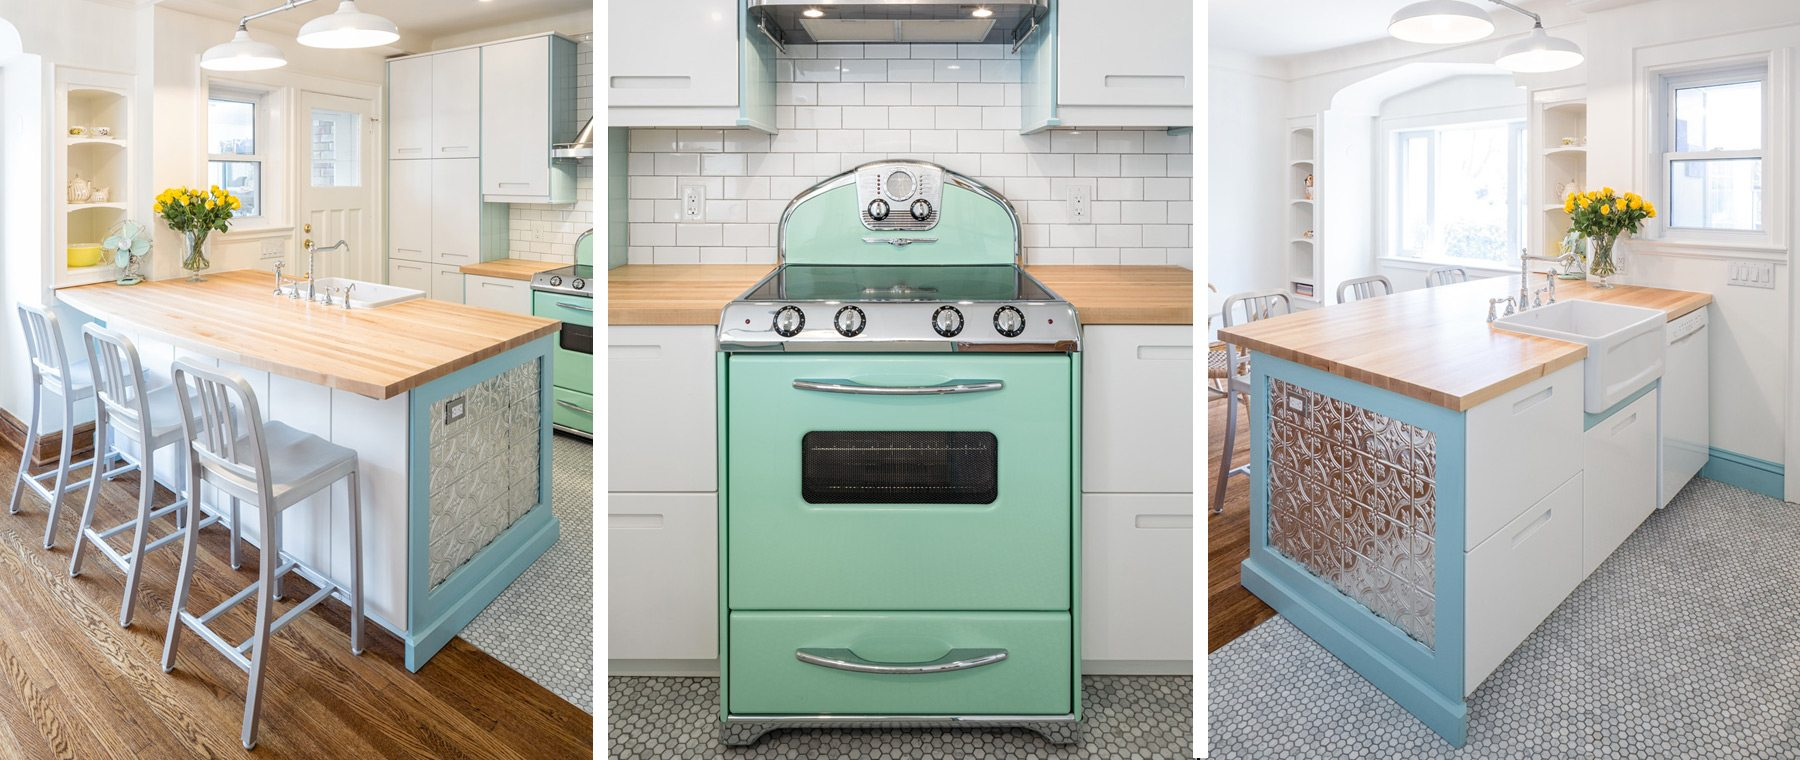 Retro-look stove — The centrepiece to a thoughtful remodel